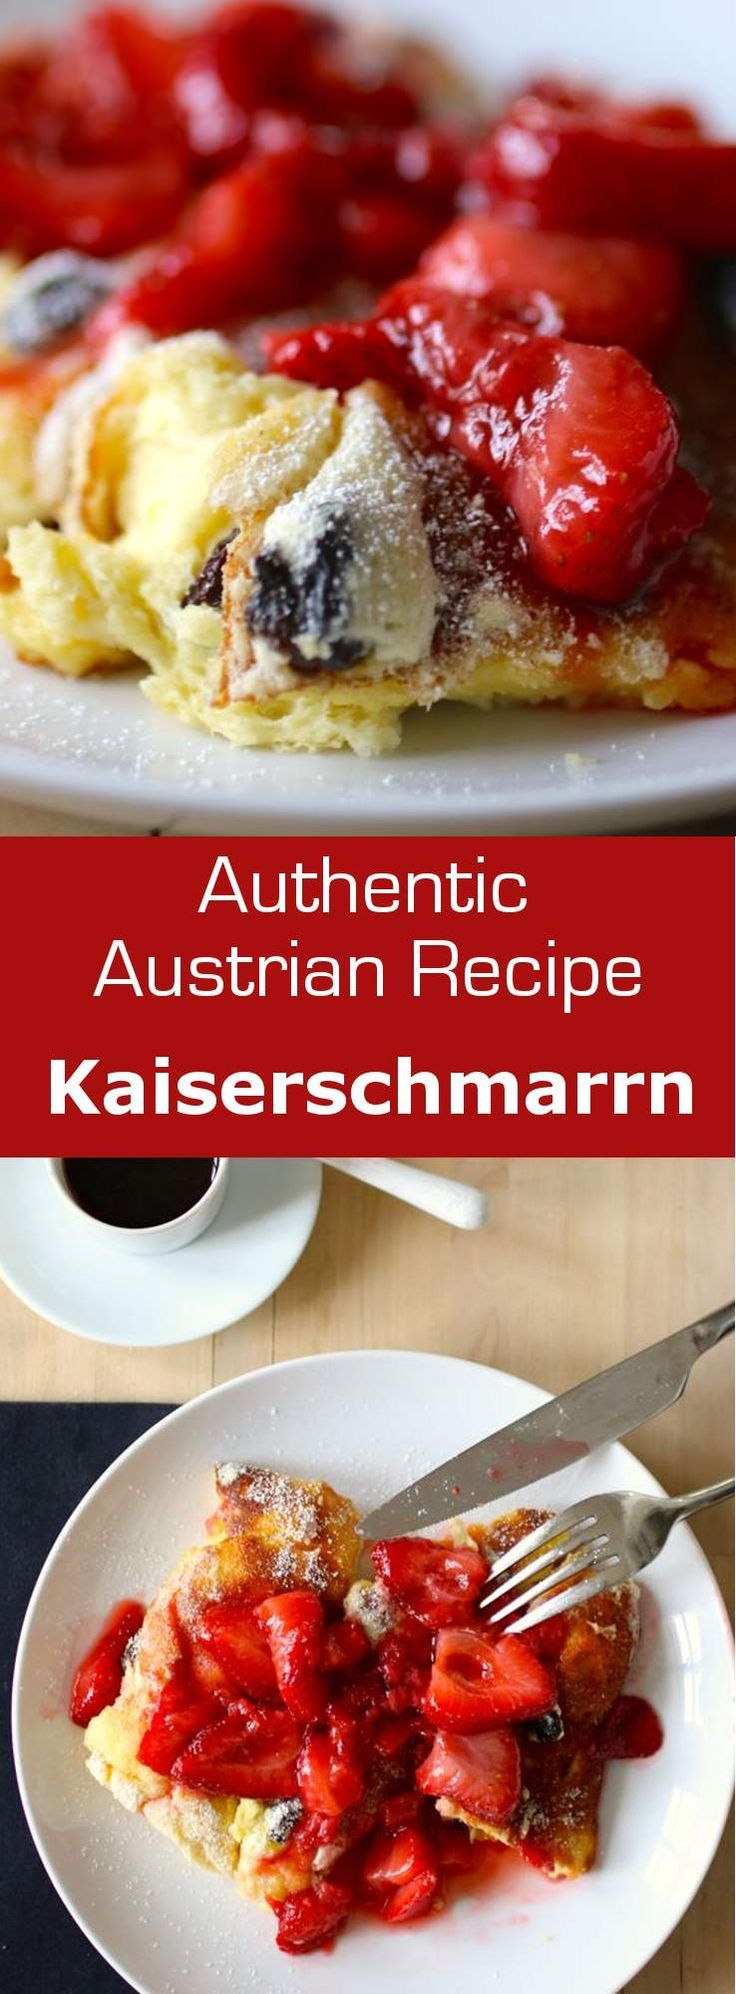 25 best austrian food you have to cook images on pinterest kaiserschmarrn austrian recipesaustrian foodeasy forumfinder Images